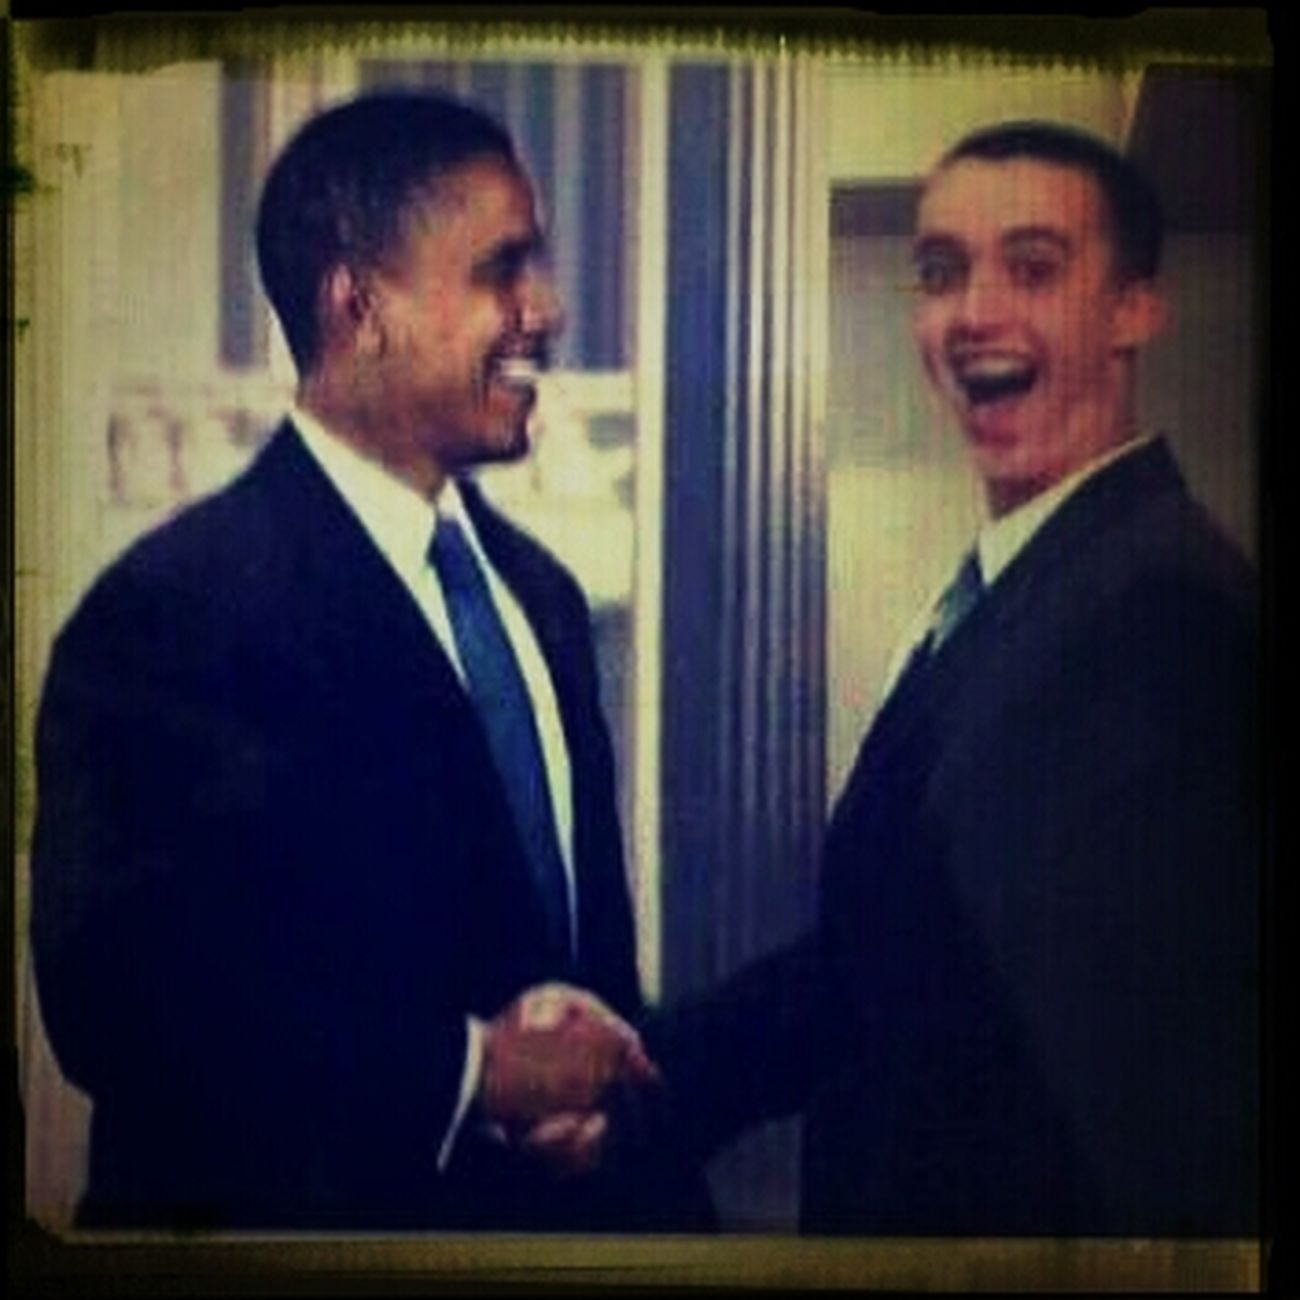 DC with my boy Obama #throwbackSunday